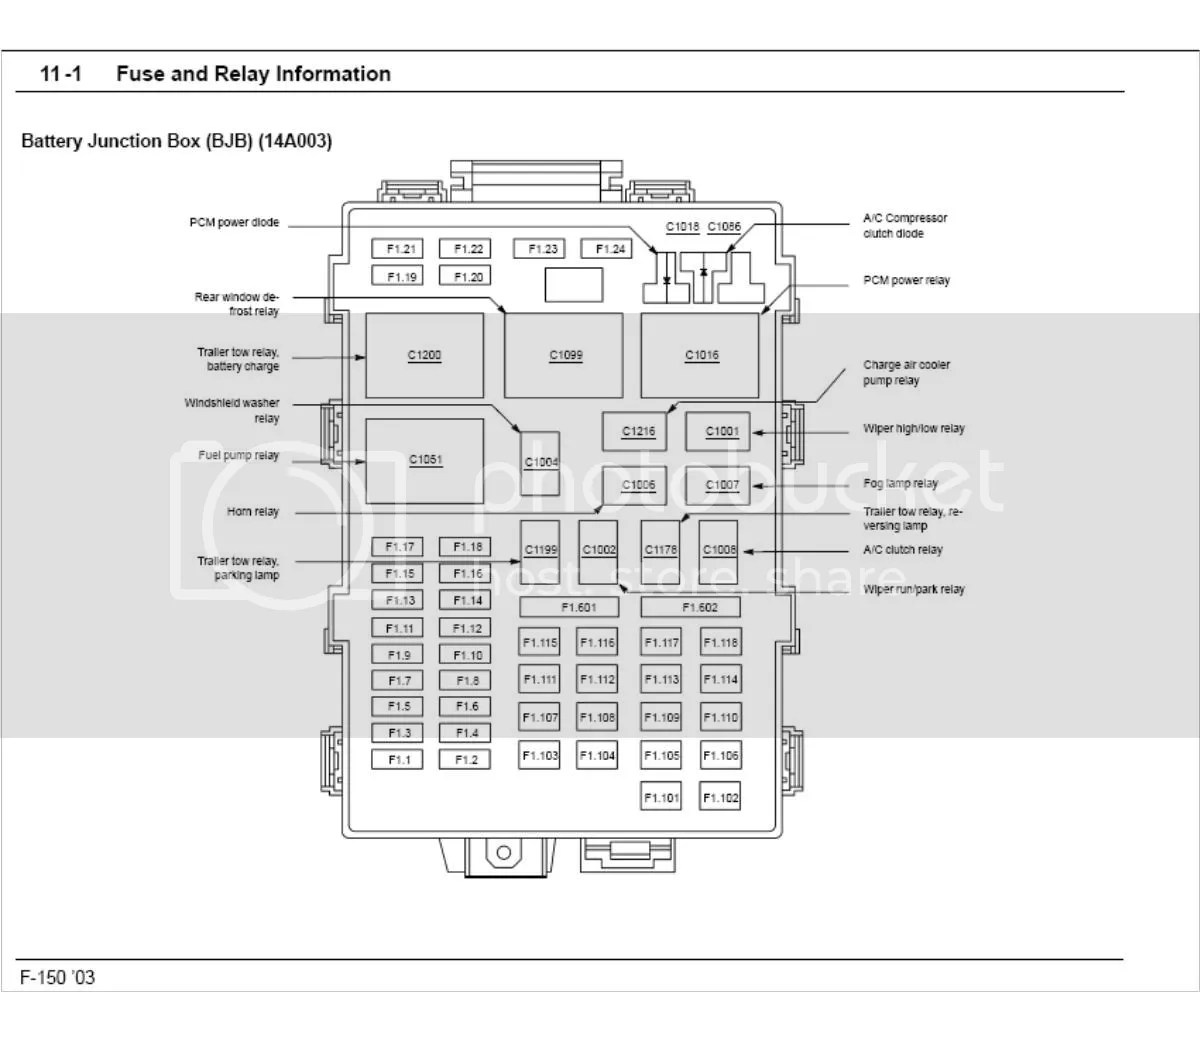 hight resolution of fuse diagram for 2003 f150 4 6l ford f150 forum 2003 ford explorer fuse chart 2003 ford fuse panel diagram